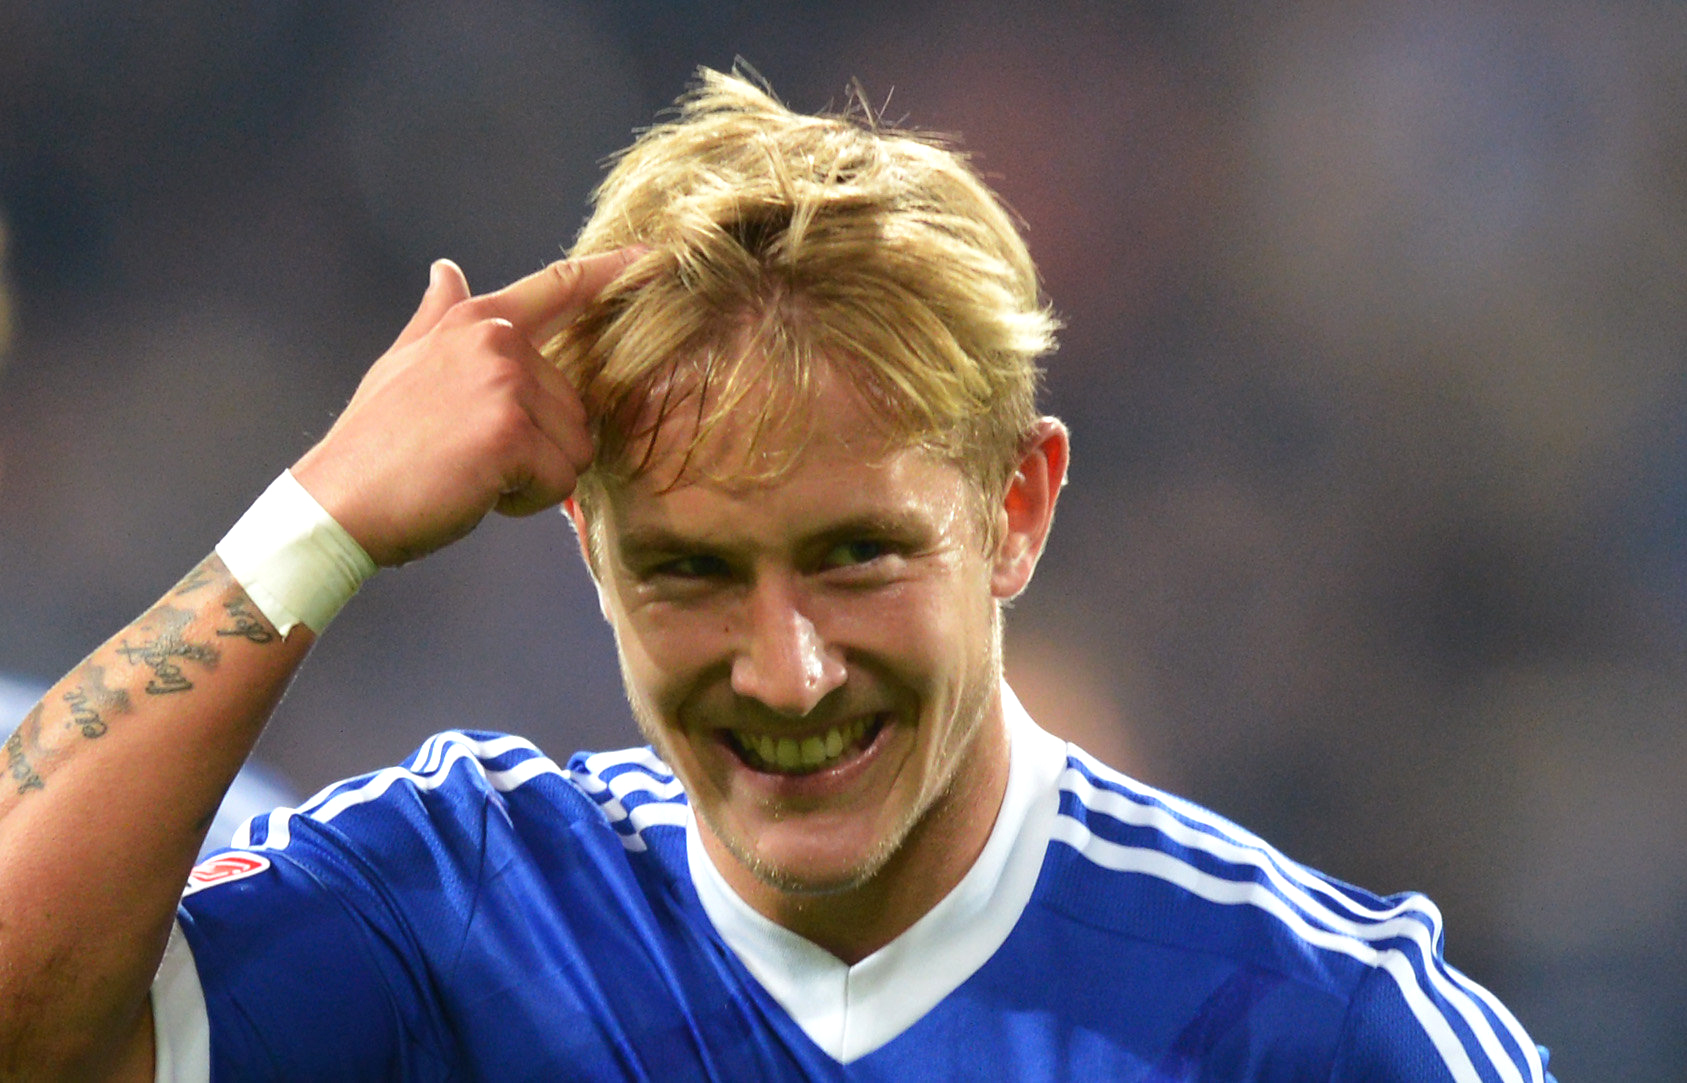 Top talent: Lewis Holtby is heading to the Premier League (Picture: AP)